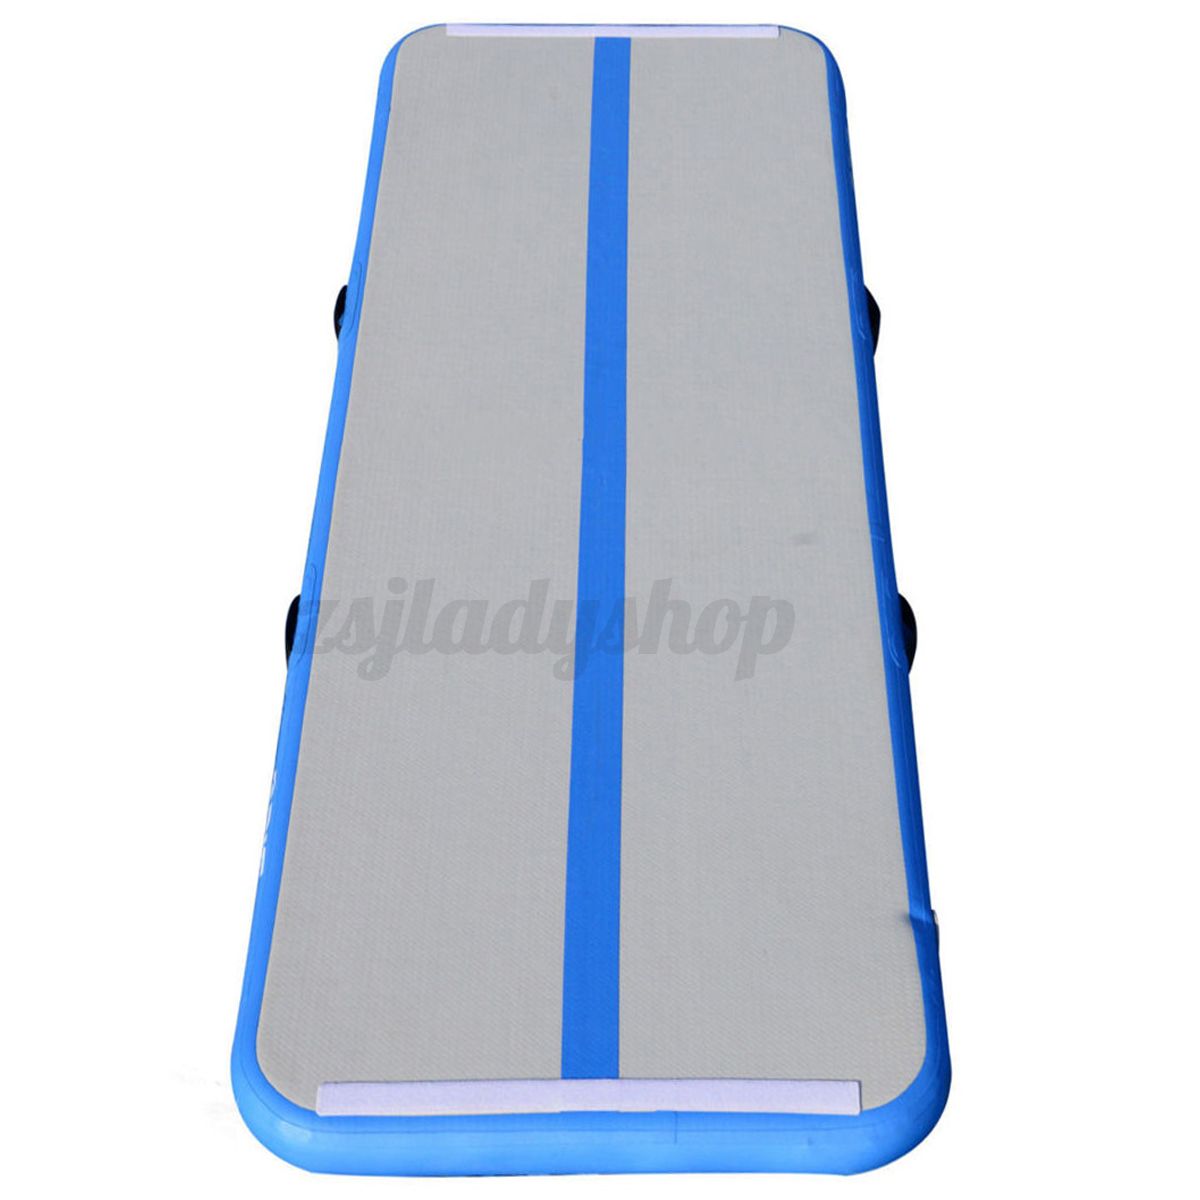 6m Inflatable Air Track Tumbling Floor Gymnastics Practice